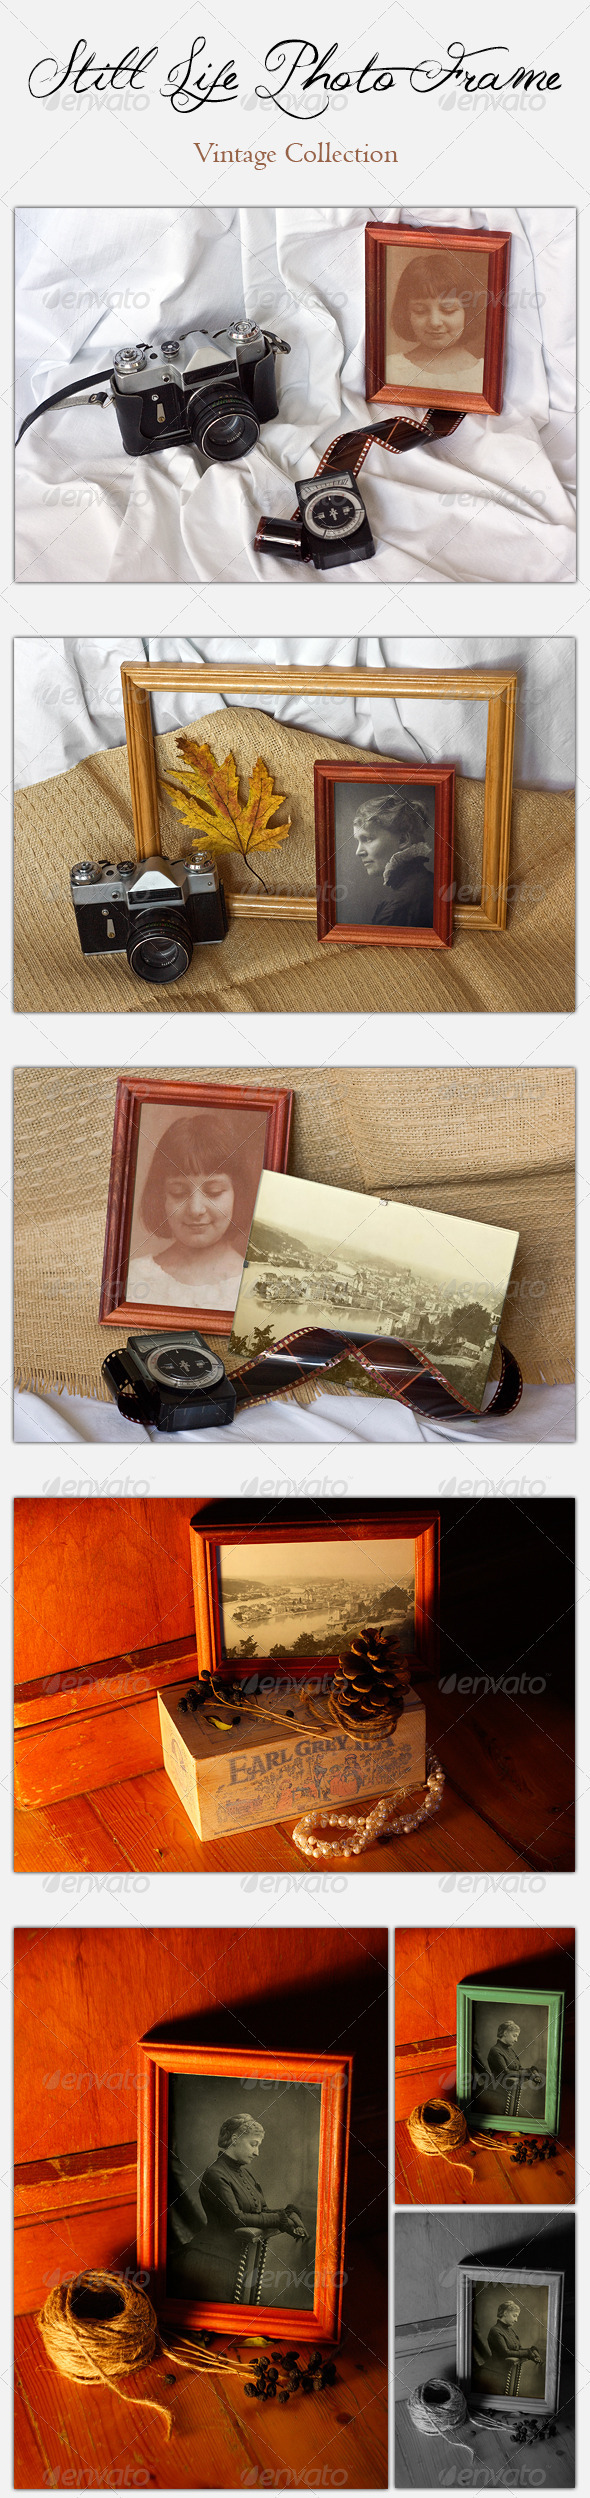 GraphicRiver Still Life Photo Frame Vintage Collection 3580445